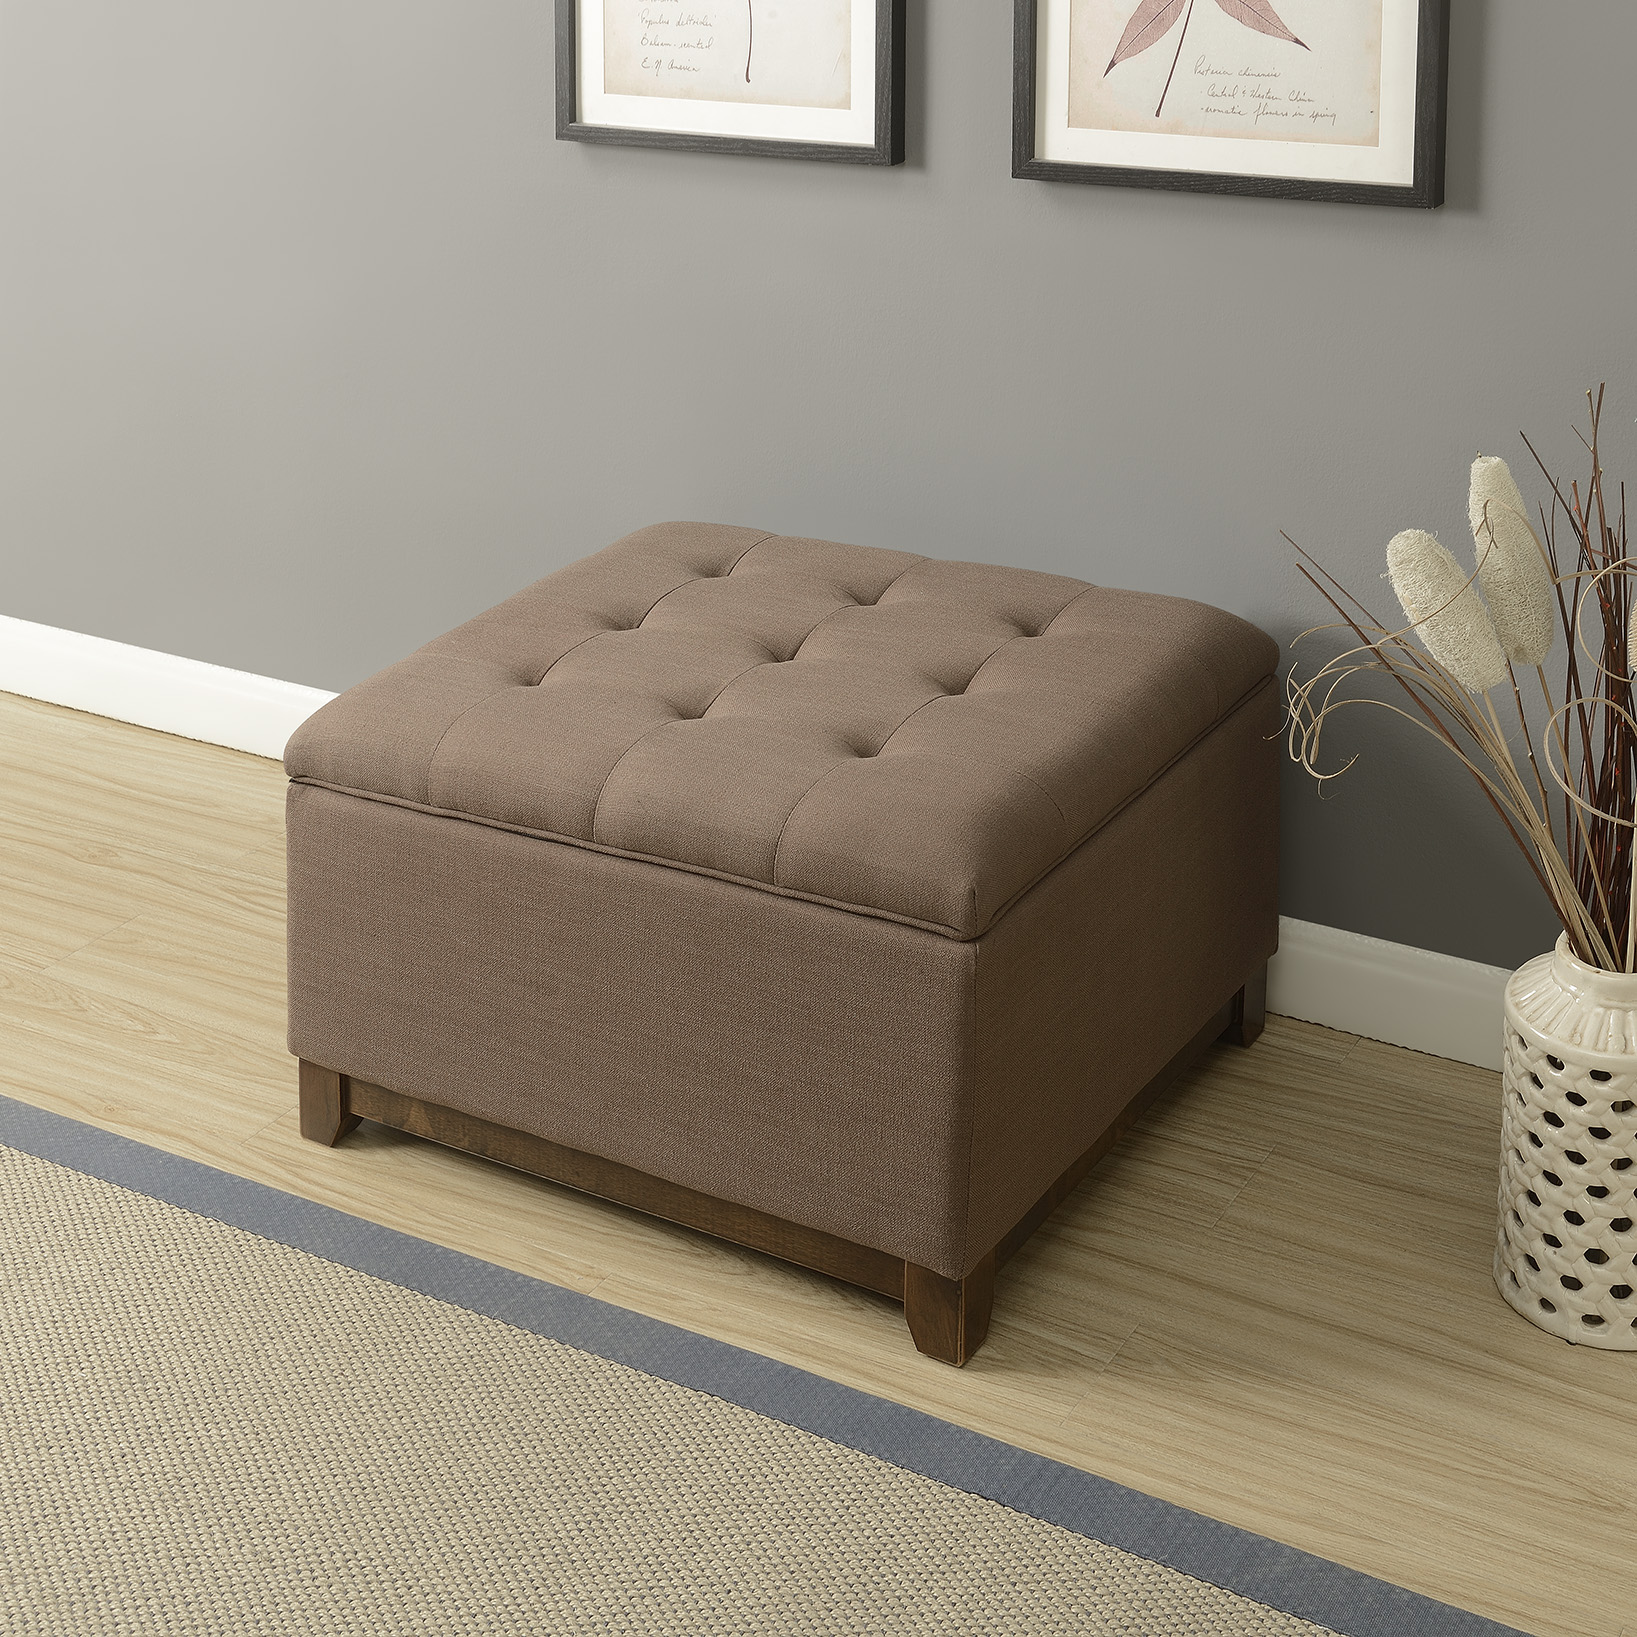 thumbnail 8 - Large Storage Ottoman Stool Bench Seat Linen Tufted, (Brown, Gray and Navy)